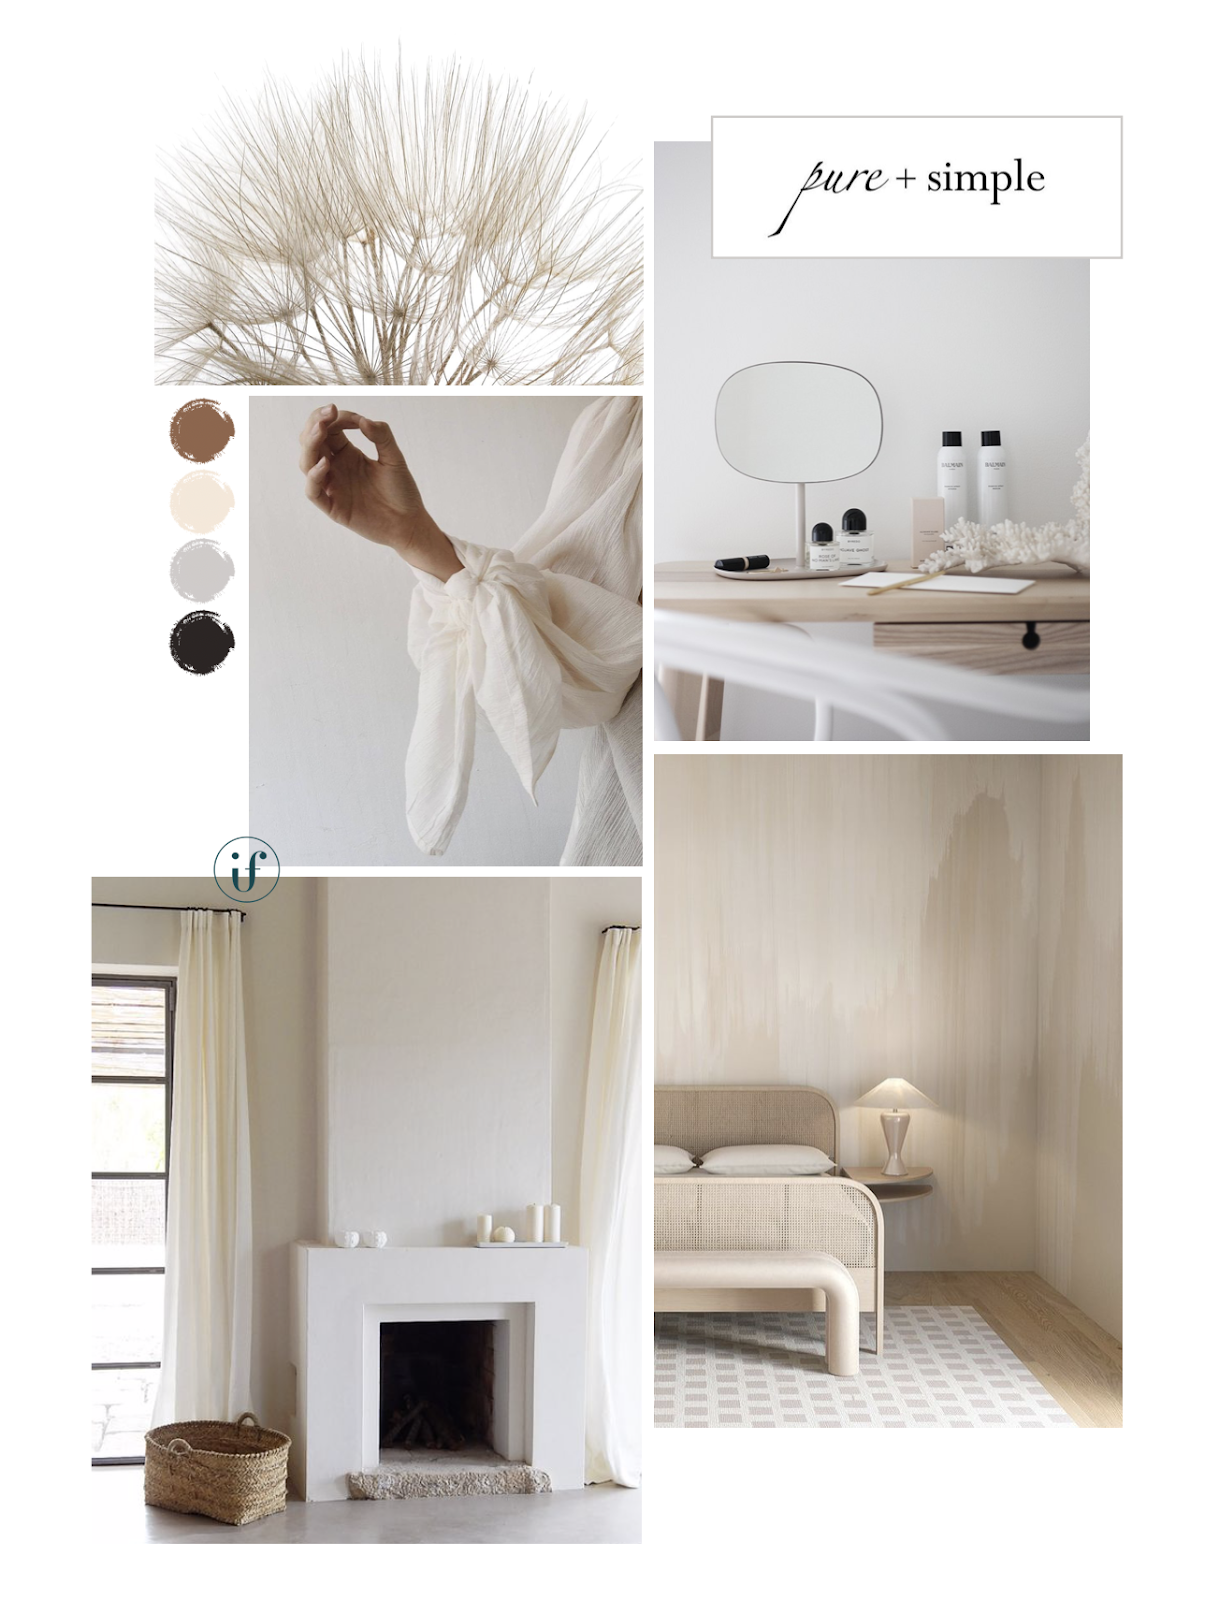 ilaria fatone - colour sand inspired mood board